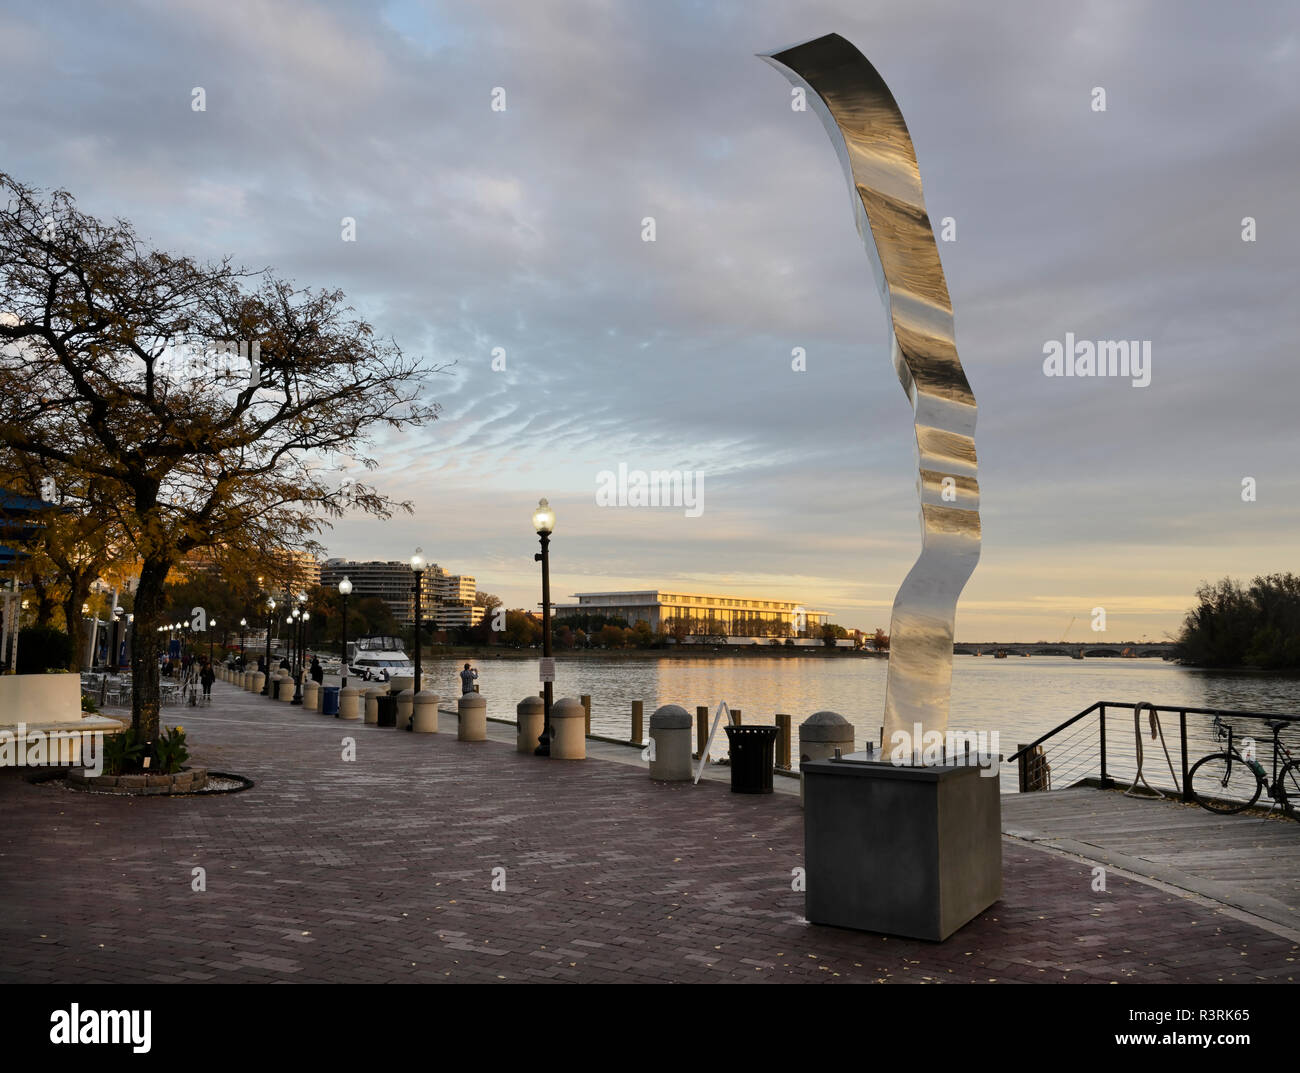 Georgetown Waterfront Park pedestrian walkway along Potomoac River with sculpture, Mother Earth by Barton Rubenstein - Stock Image